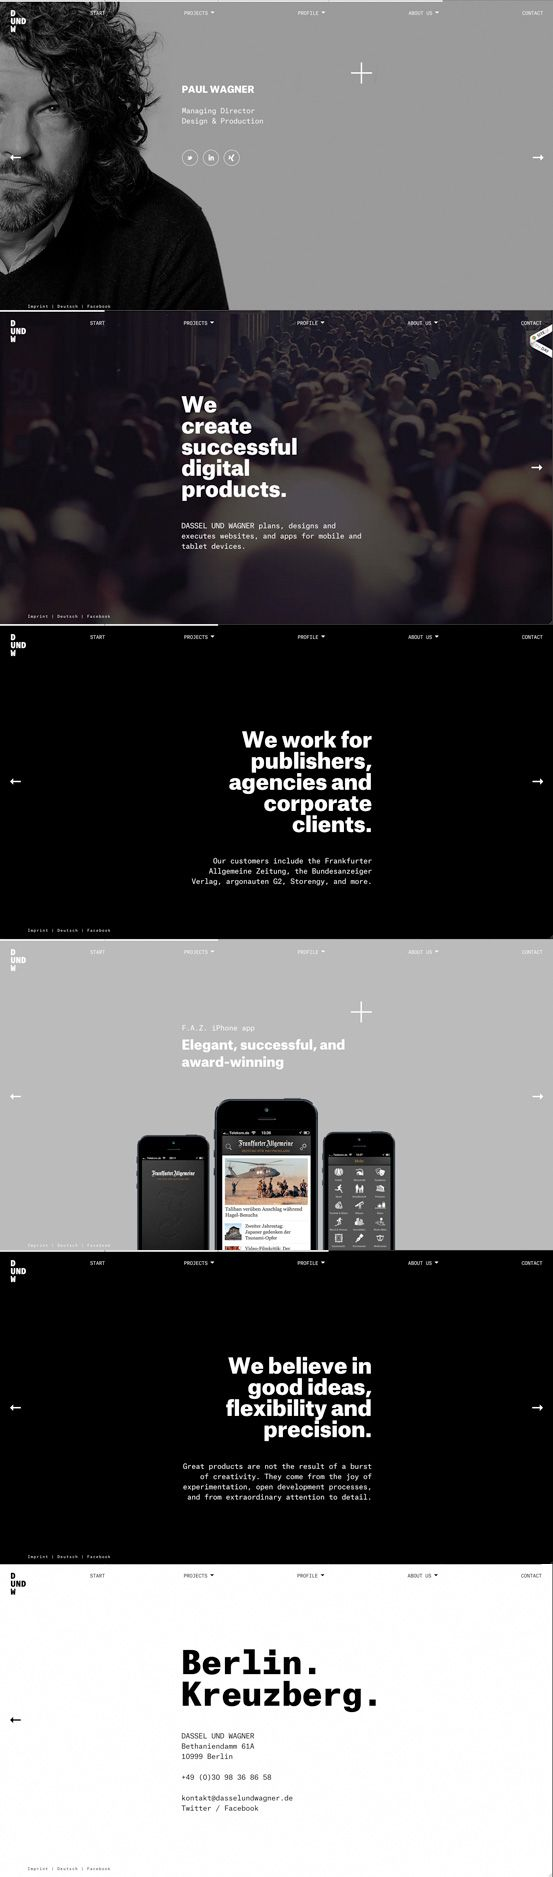 Designer: Dassel and Wagner | #webdesign #it #web #design #layout #userinterface #website #webdesign < repinned by www.BlickeDeeler.de | Take a look at www.WebsiteDesign-Hamburg.de